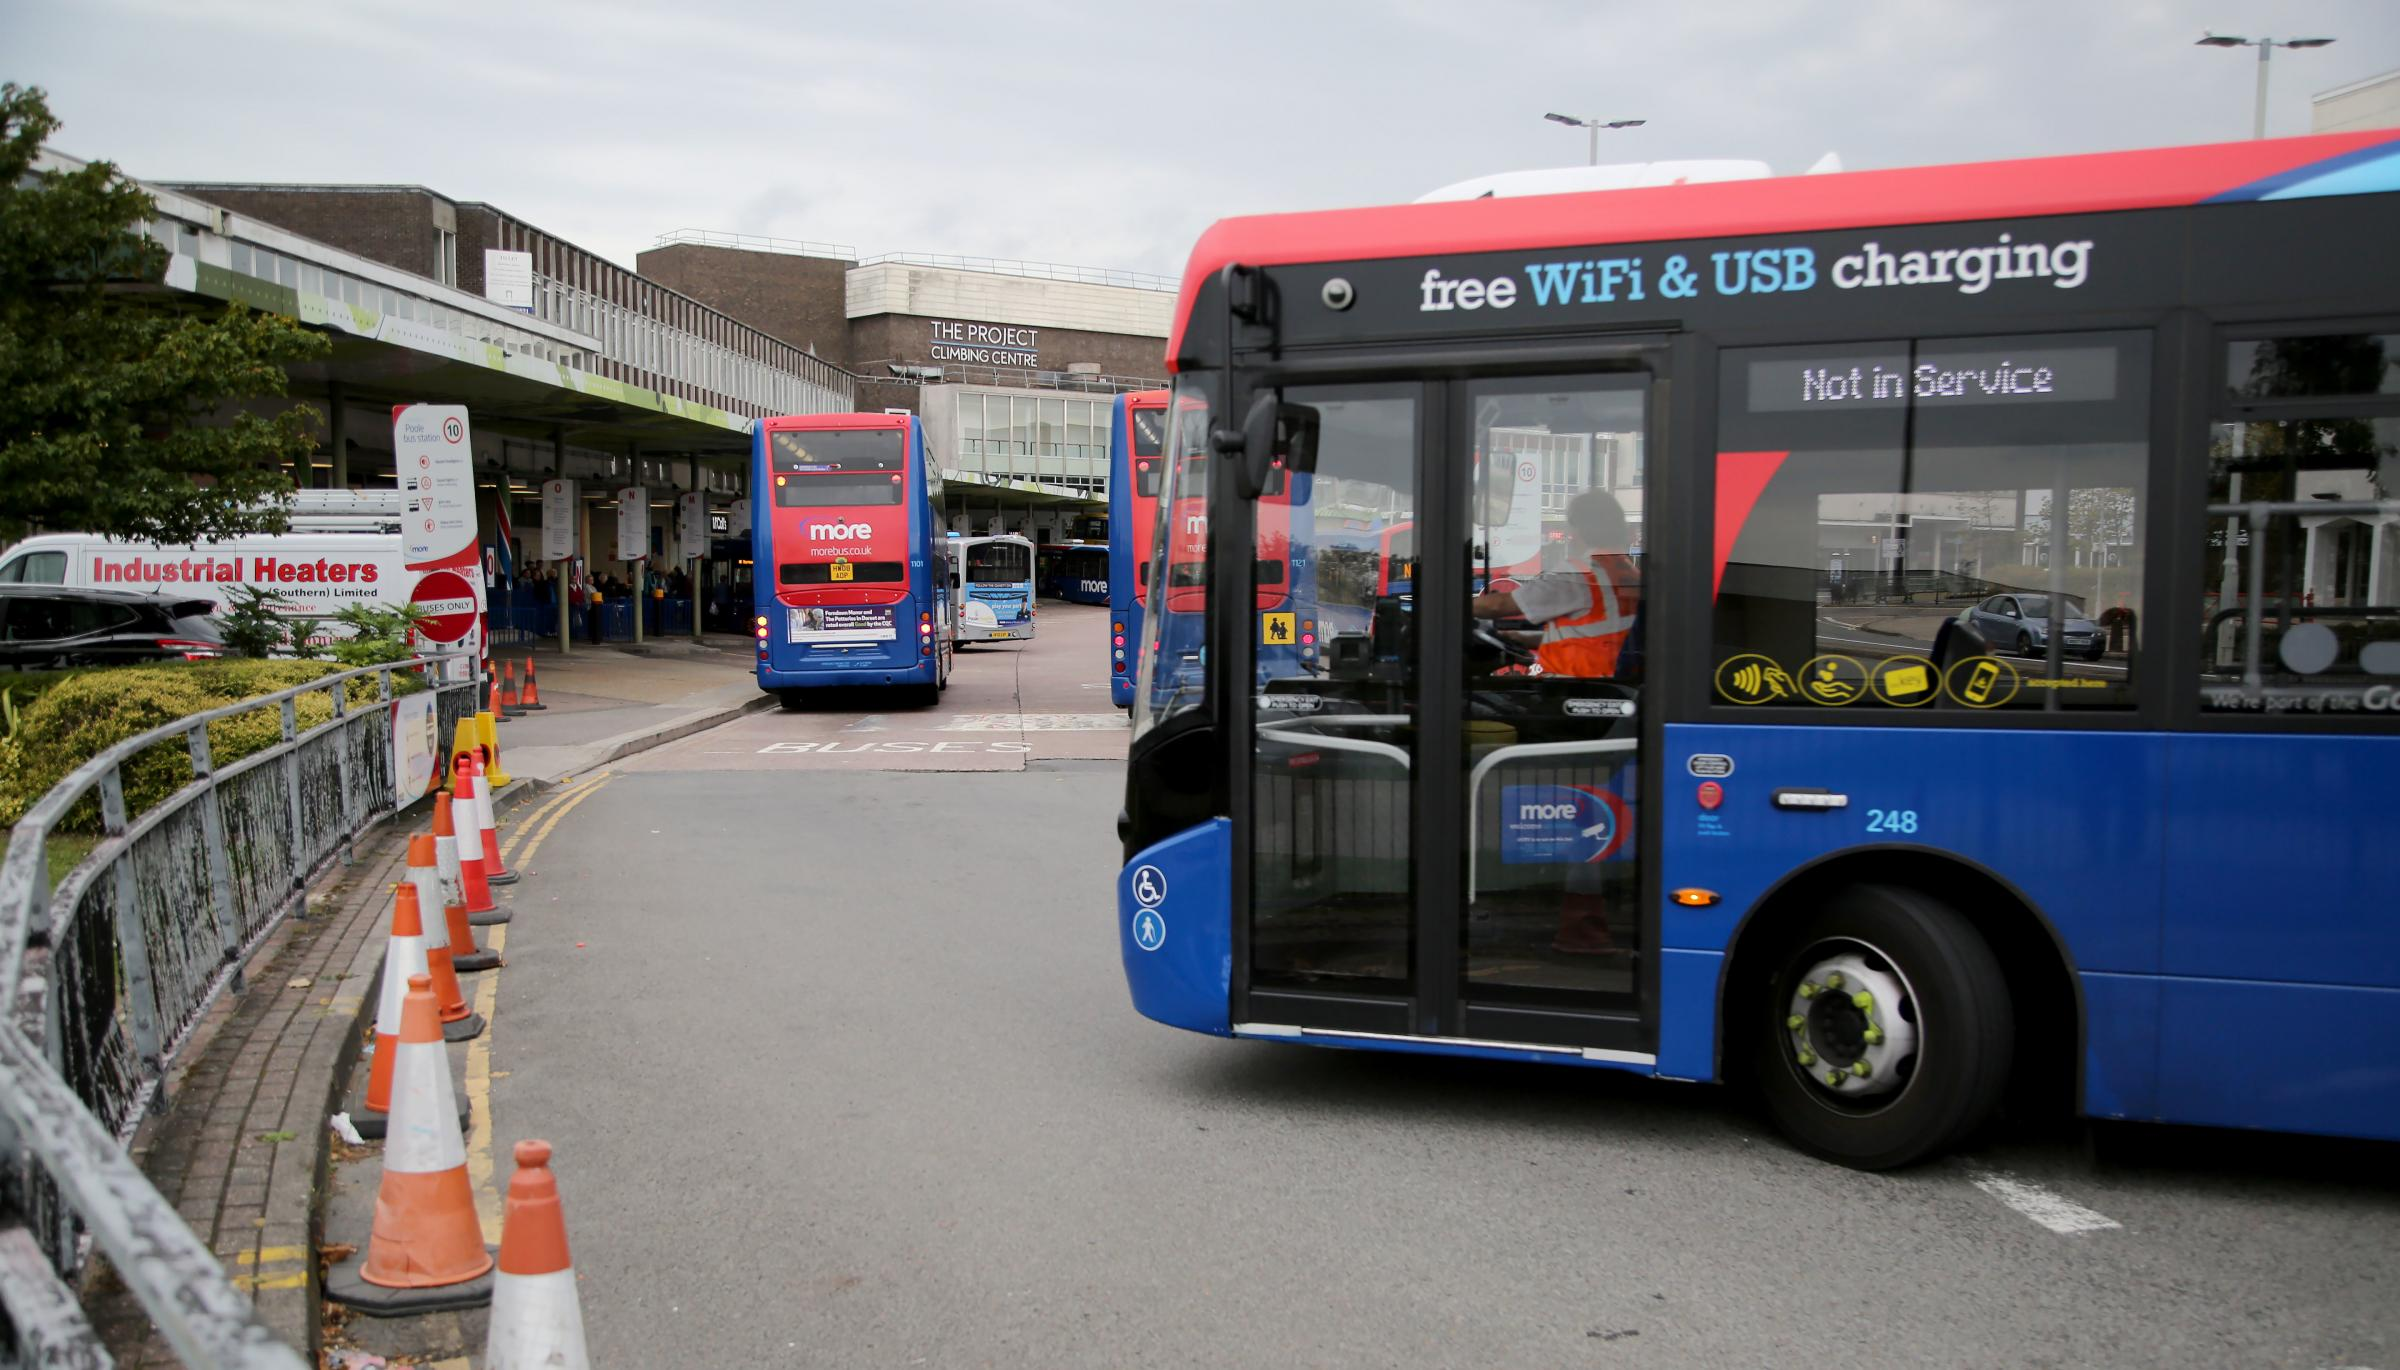 Poole Bus Station in Poole town centre